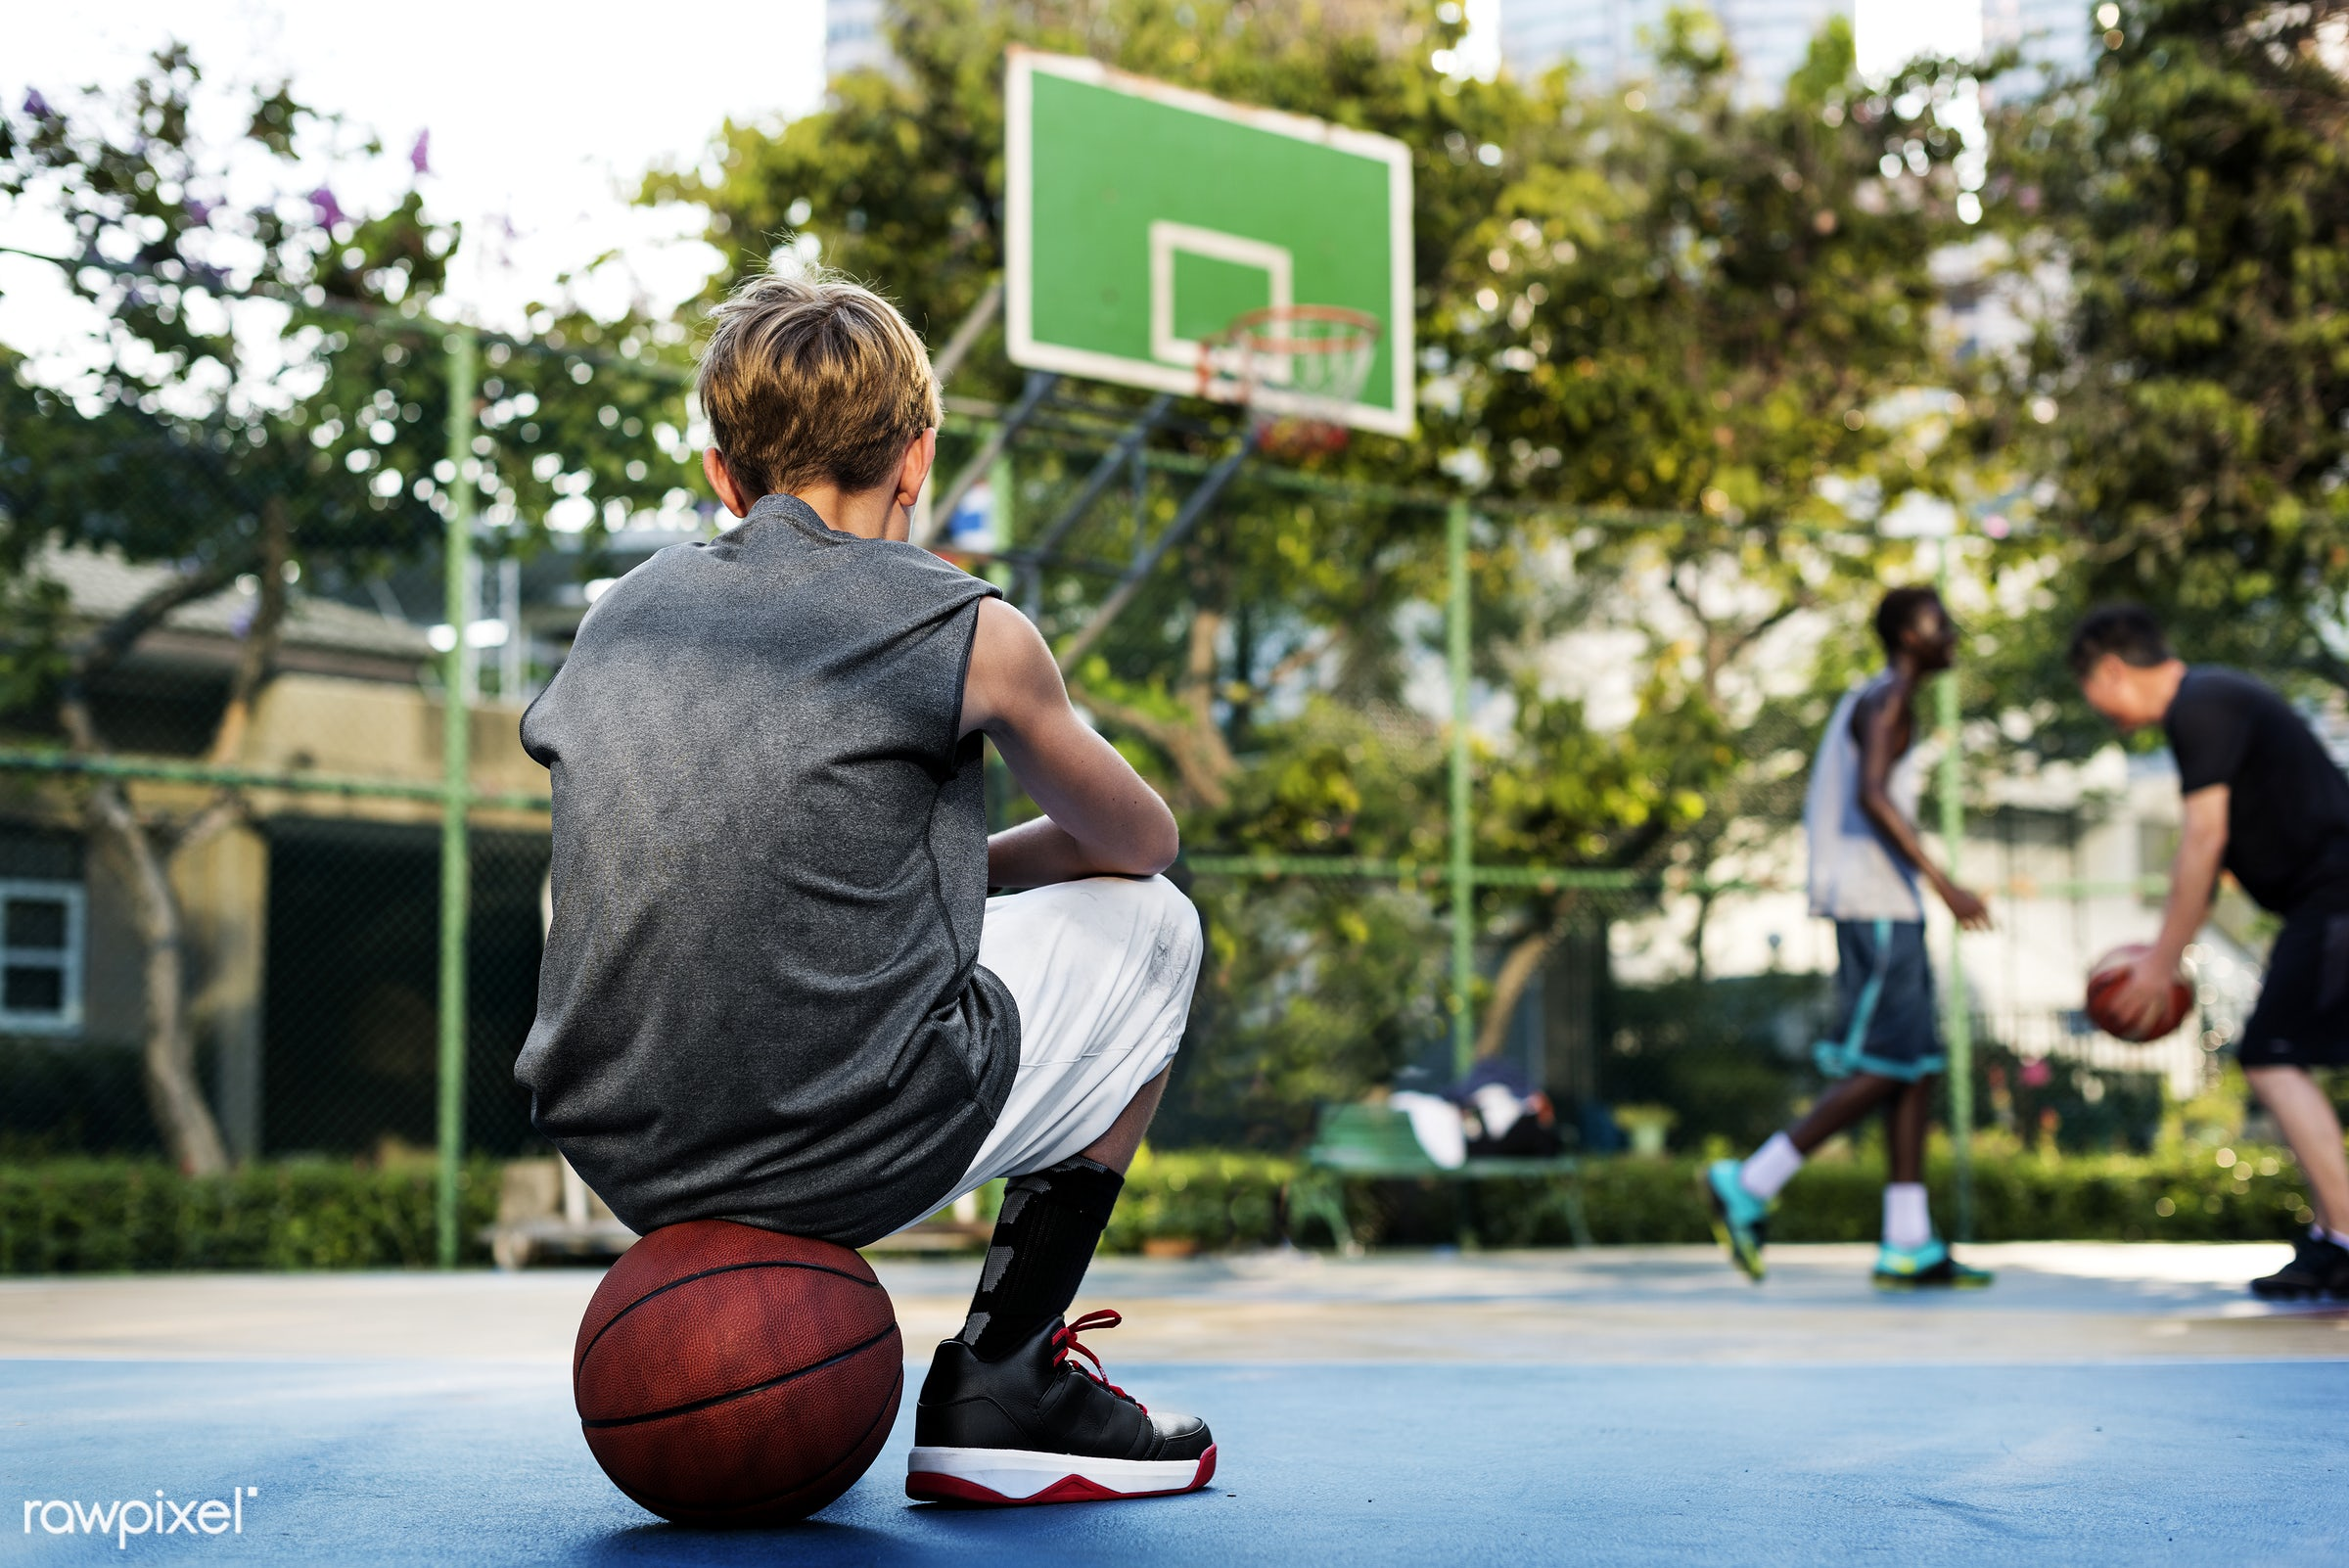 Young basketball player shoot - basketball, activity, boy, court, exercise, game, man, play, player, practice, sport,...